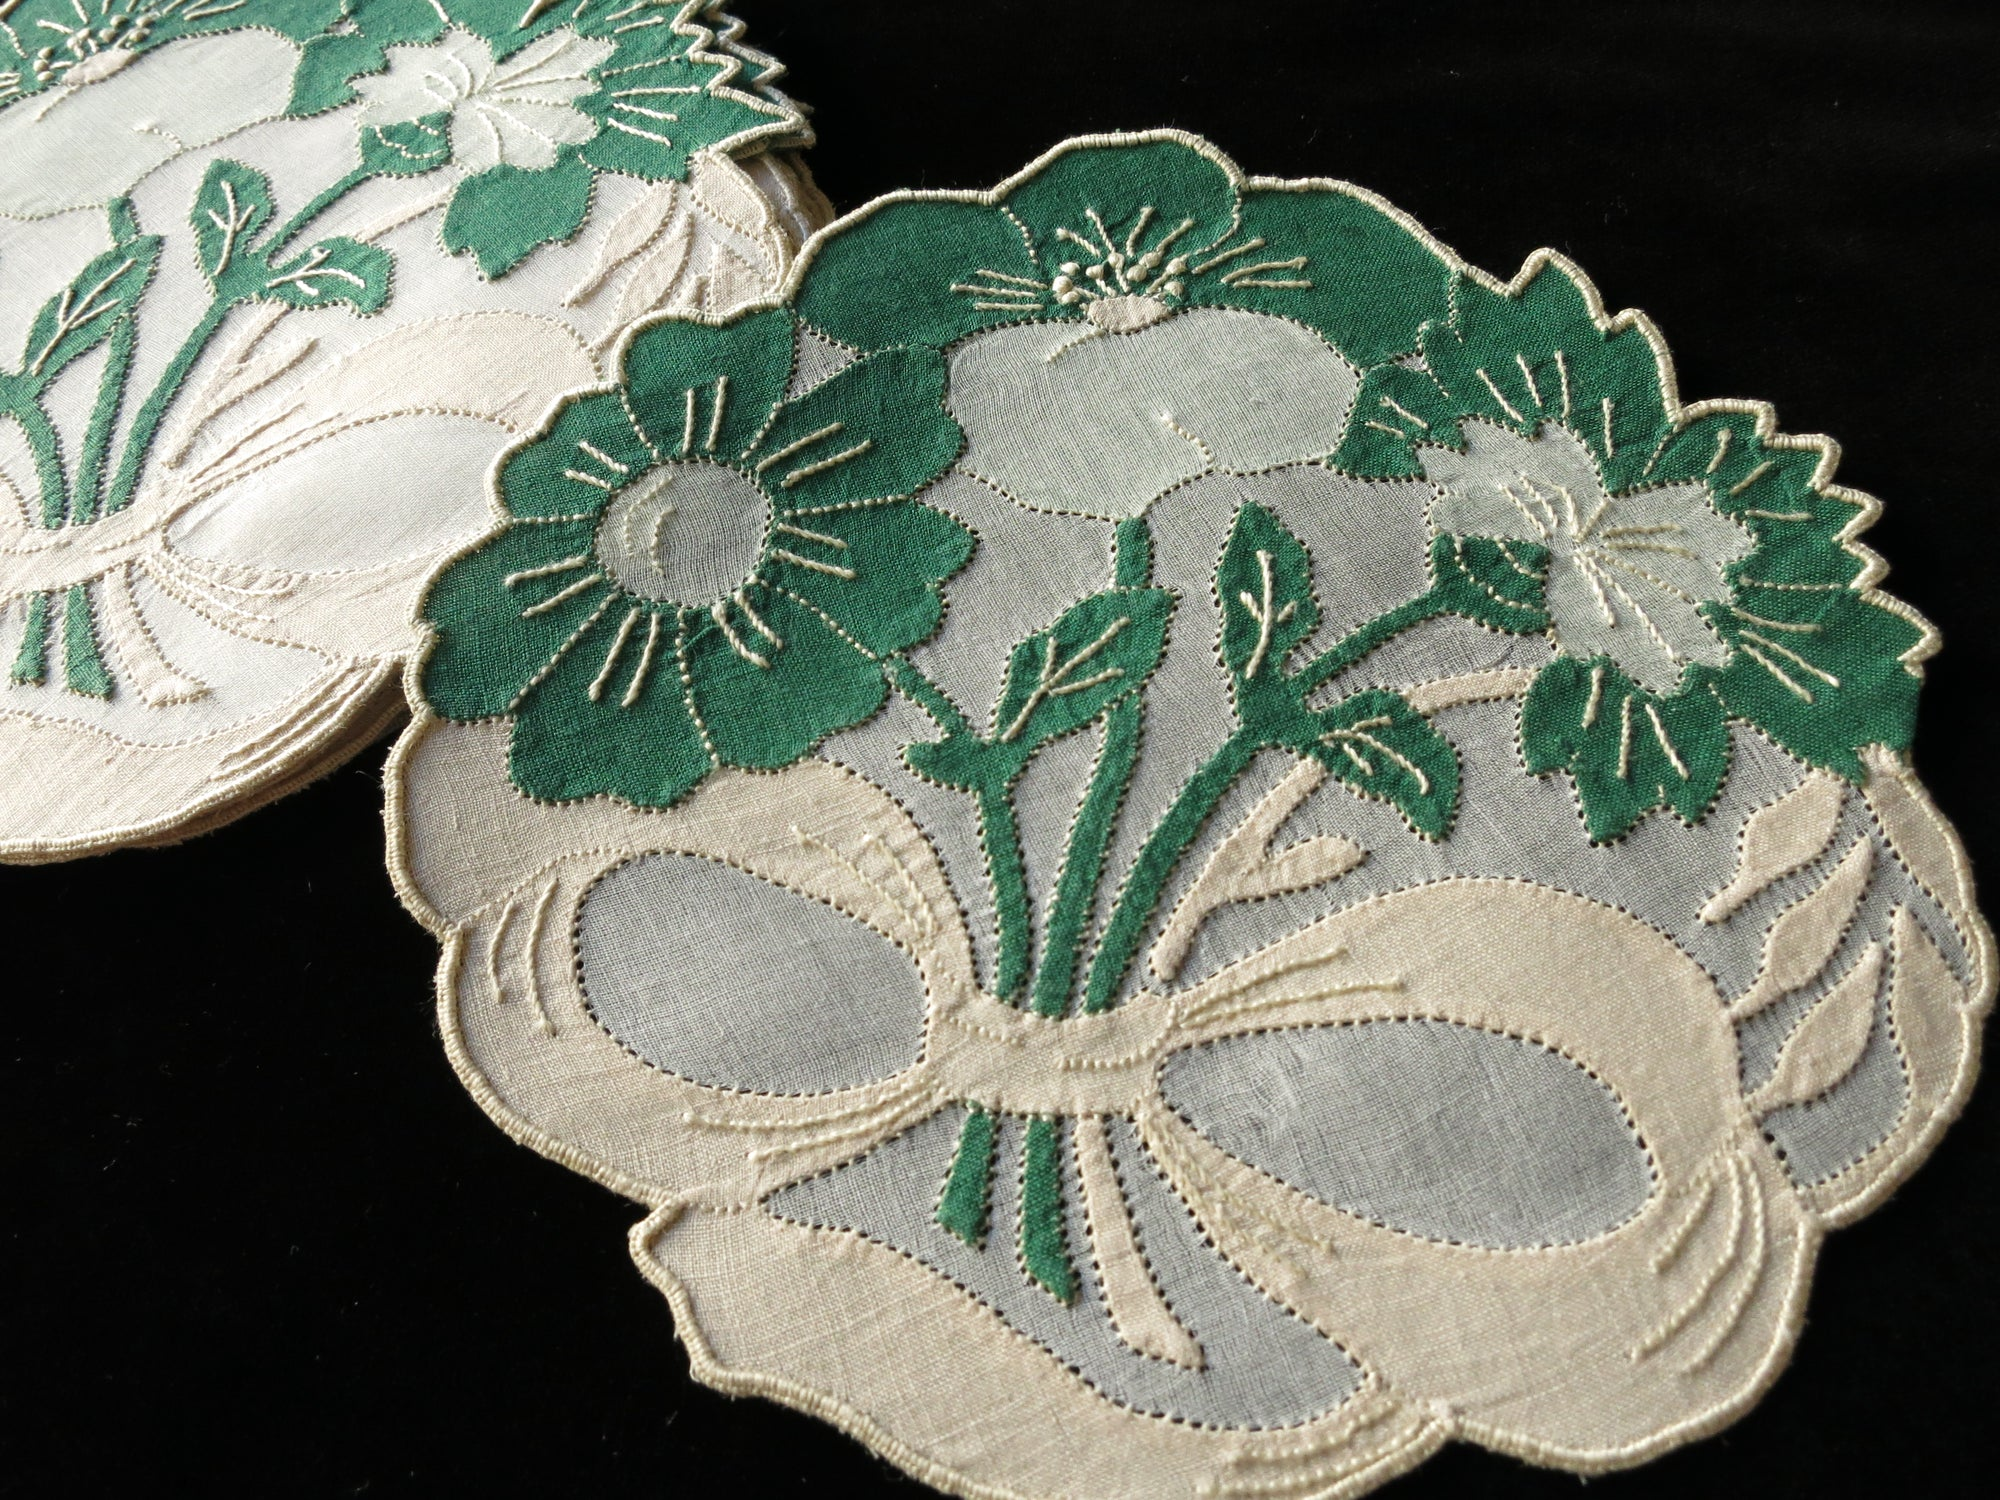 Green Flower Bouquets Vintage Madeira Embroidery Cocktail Rounds Napkins - Set of 8